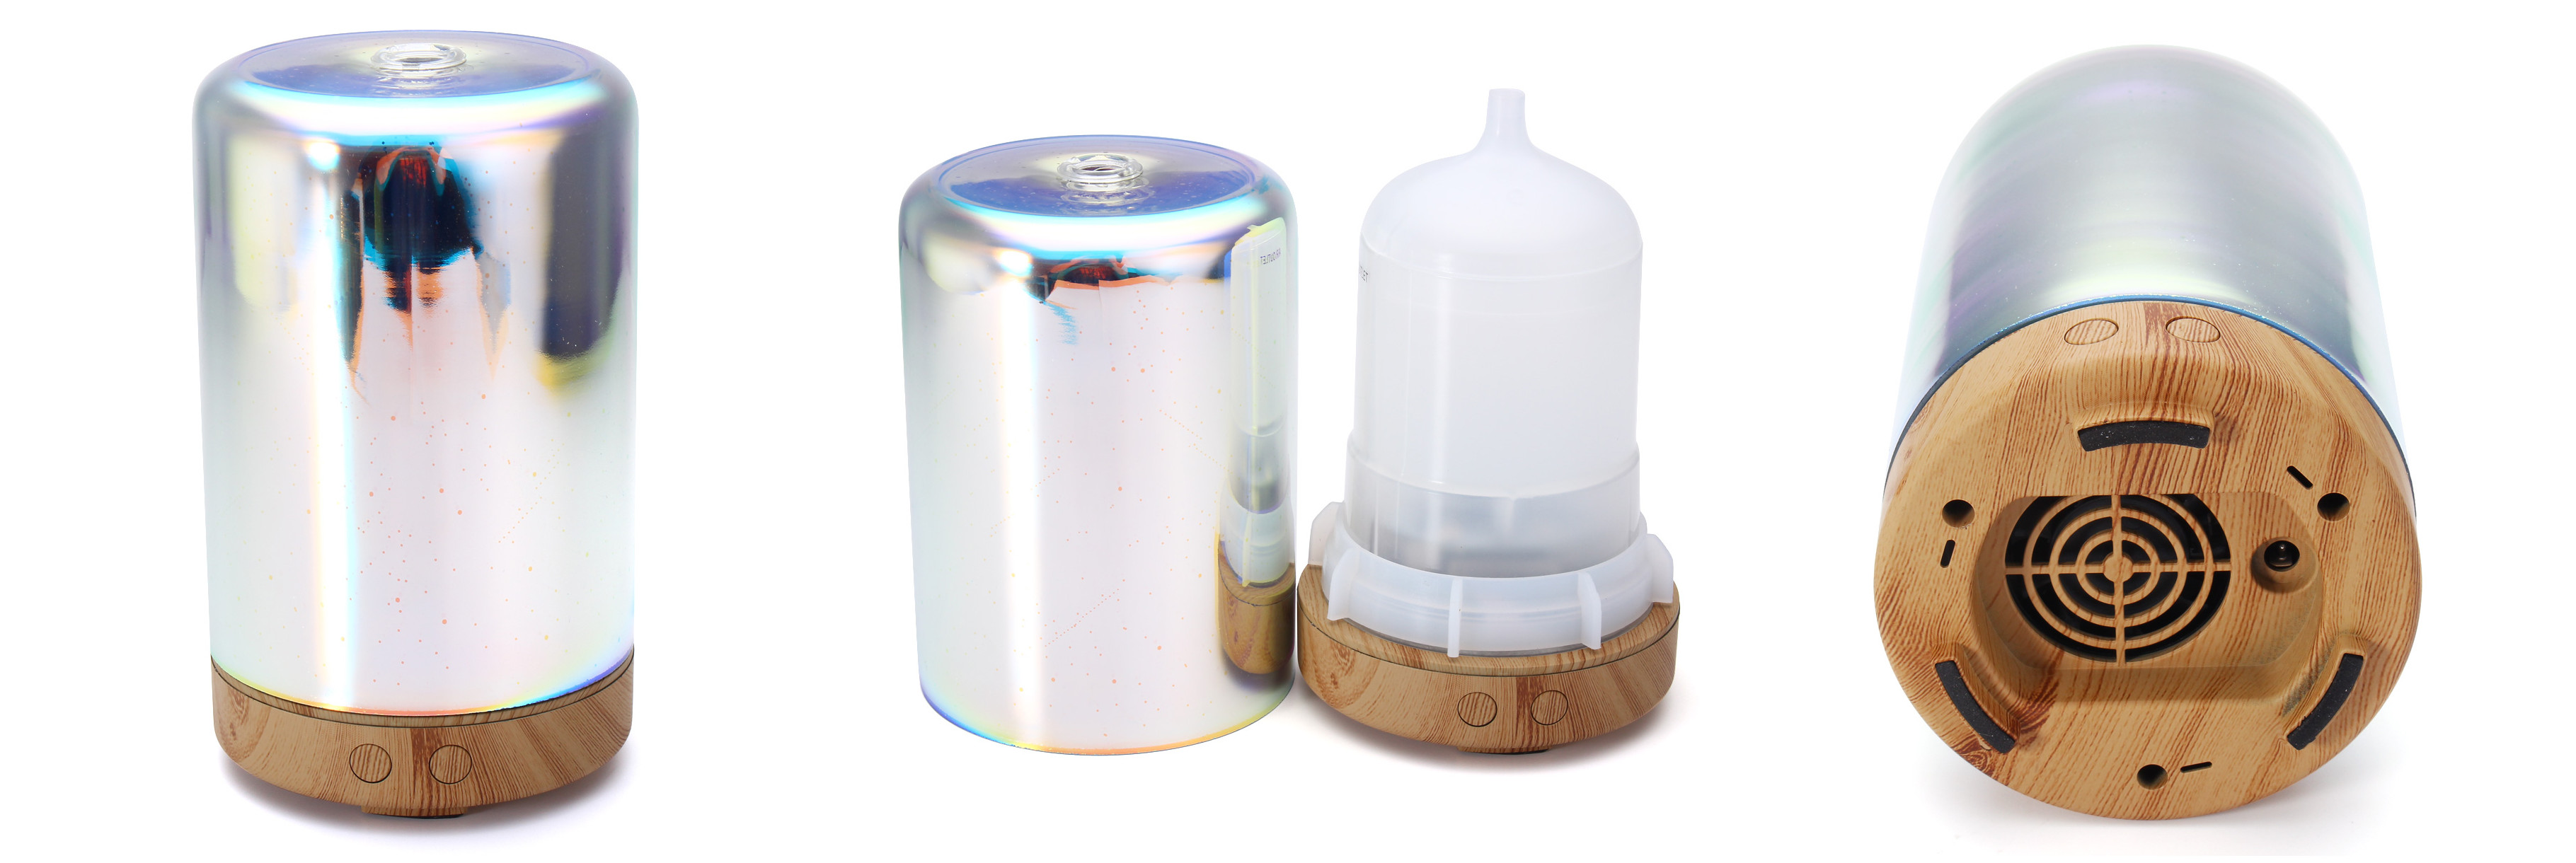 3D Light Ultrasonic Humidifier